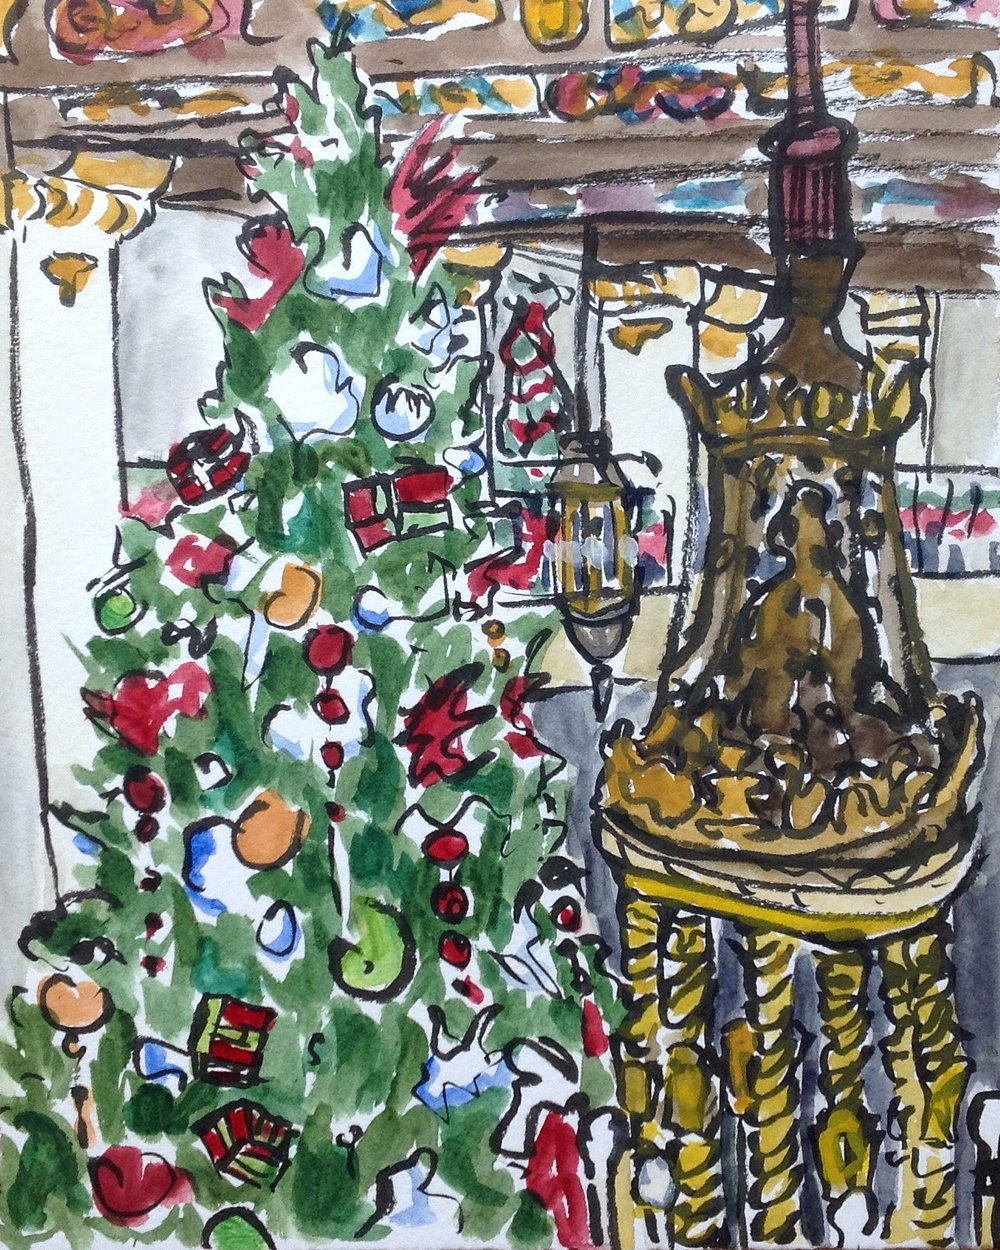 Here is this year's take on the giant Christmas tree. Rather than trying to sketch from ground level, I took to the second floor and found a little table to work at. I got an up close look at the giant lanterns as a bonus!